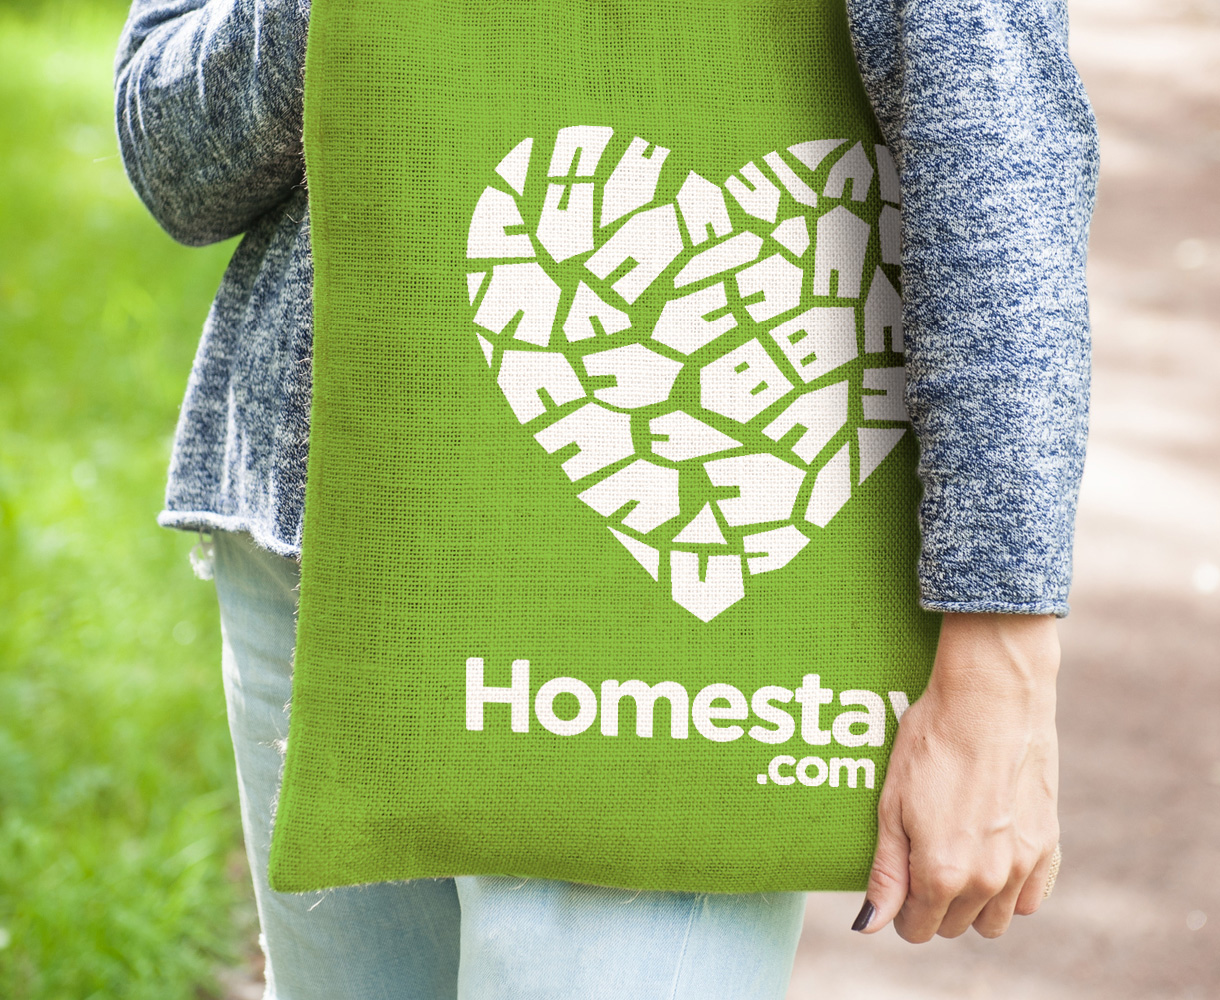 Principle brand agency Dublin homestay brand project tote bag design